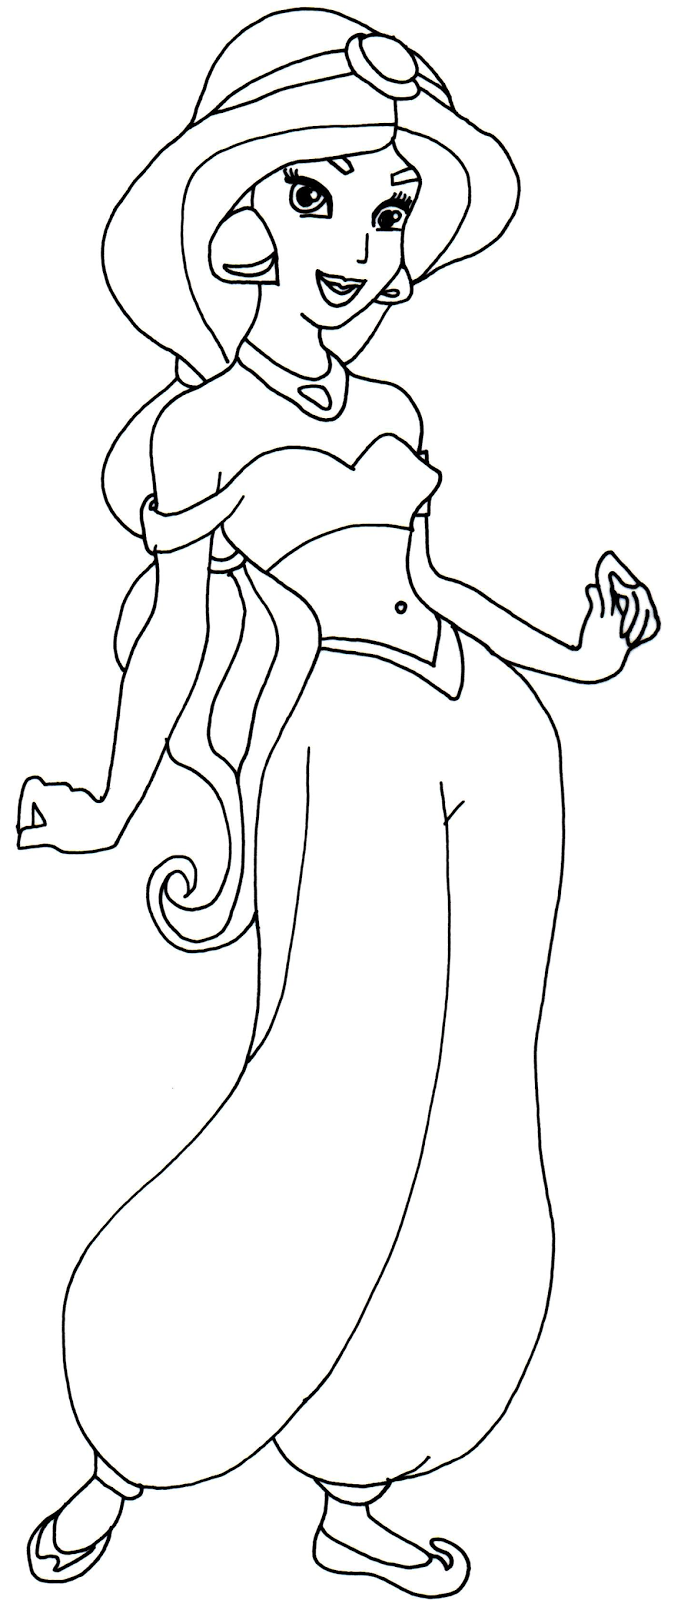 Princess jasmine coloring pages to download and print for free for Jasmine the princess coloring pages